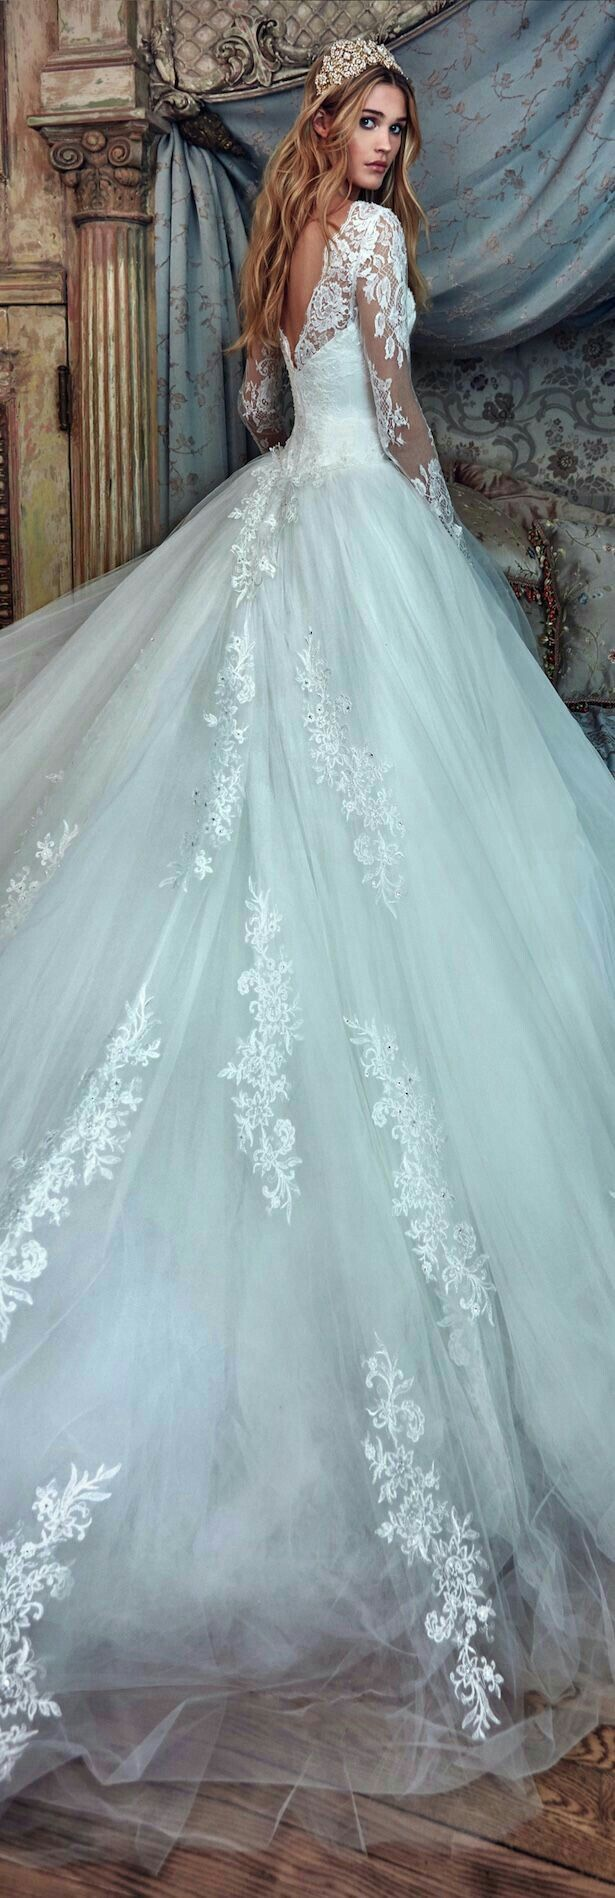 245 best Wedding Gowns images on Pinterest   Long prom dresses ...